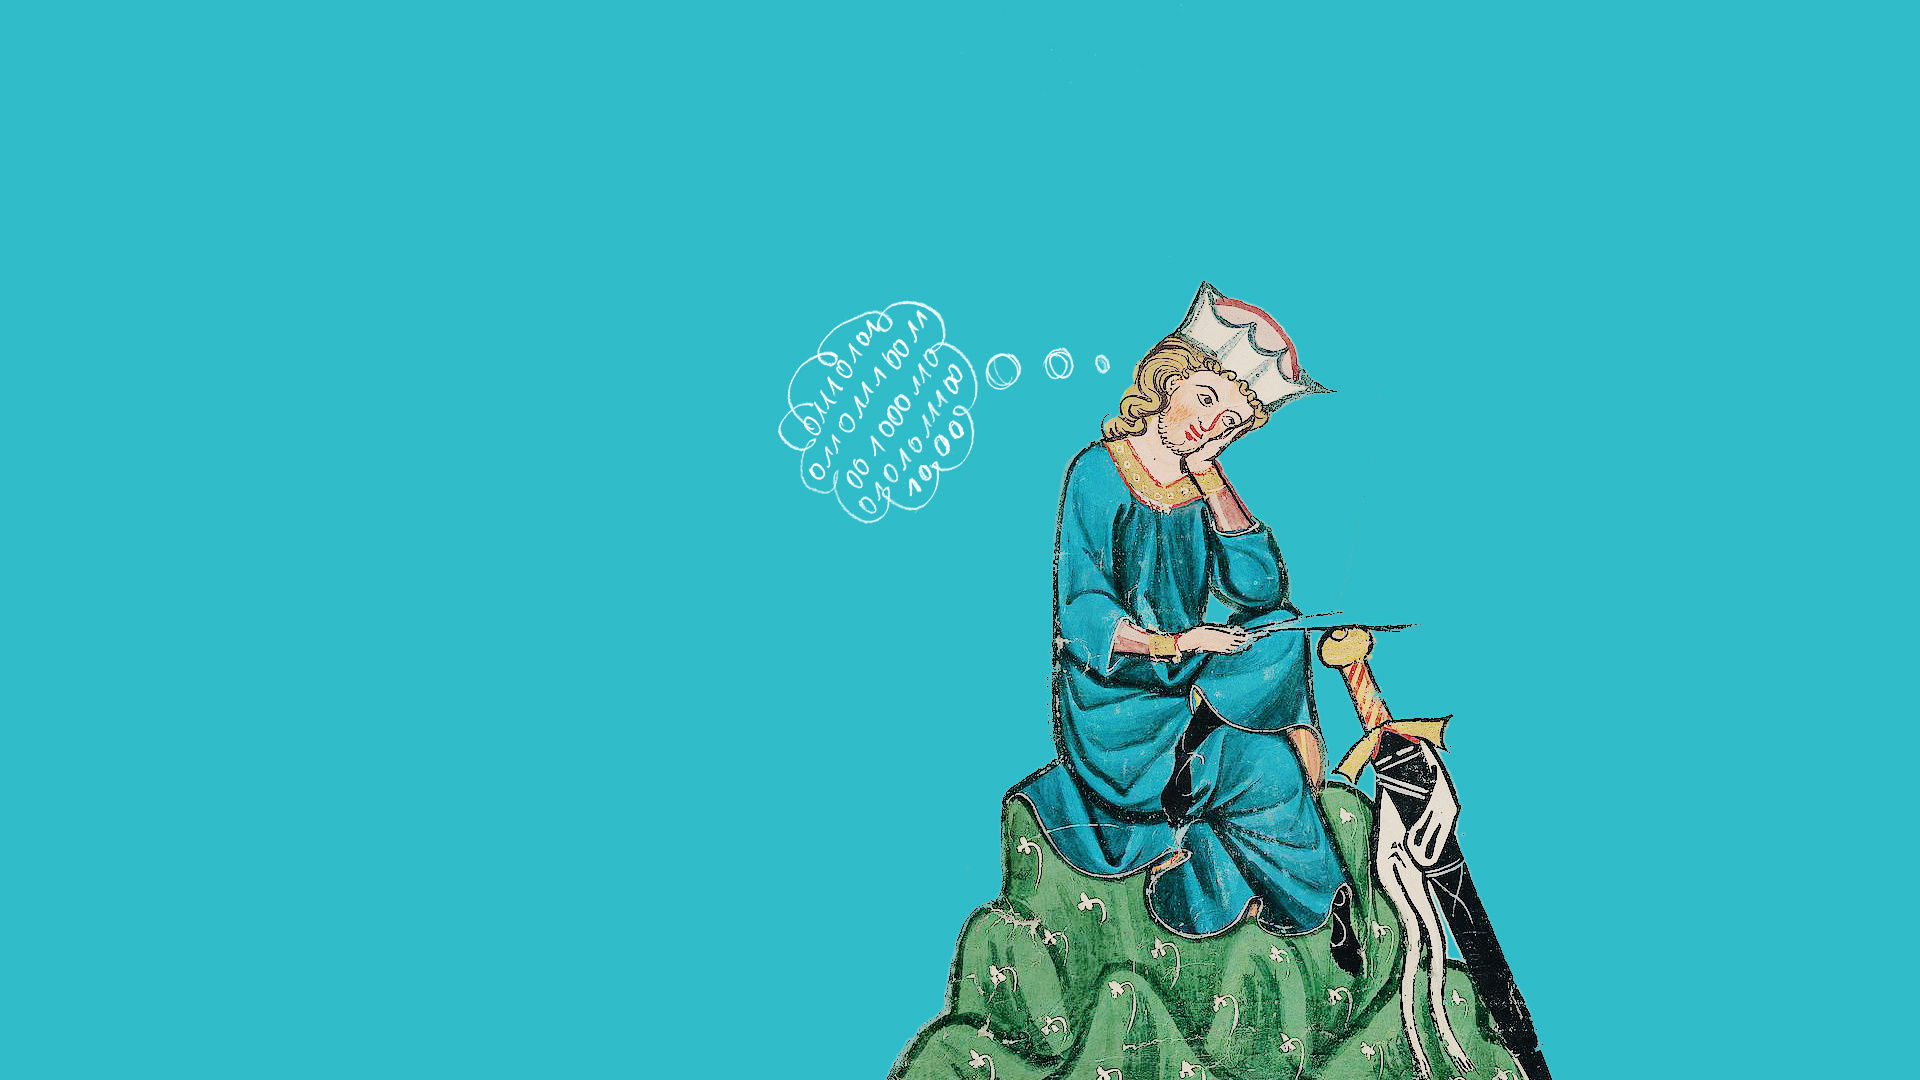 medieval illustration of Walther von der Vogelweide from the Codex Manesse manuscript, showing him contemplating his poetry; with the hand-drawn addition of a thought bubble containing binary code